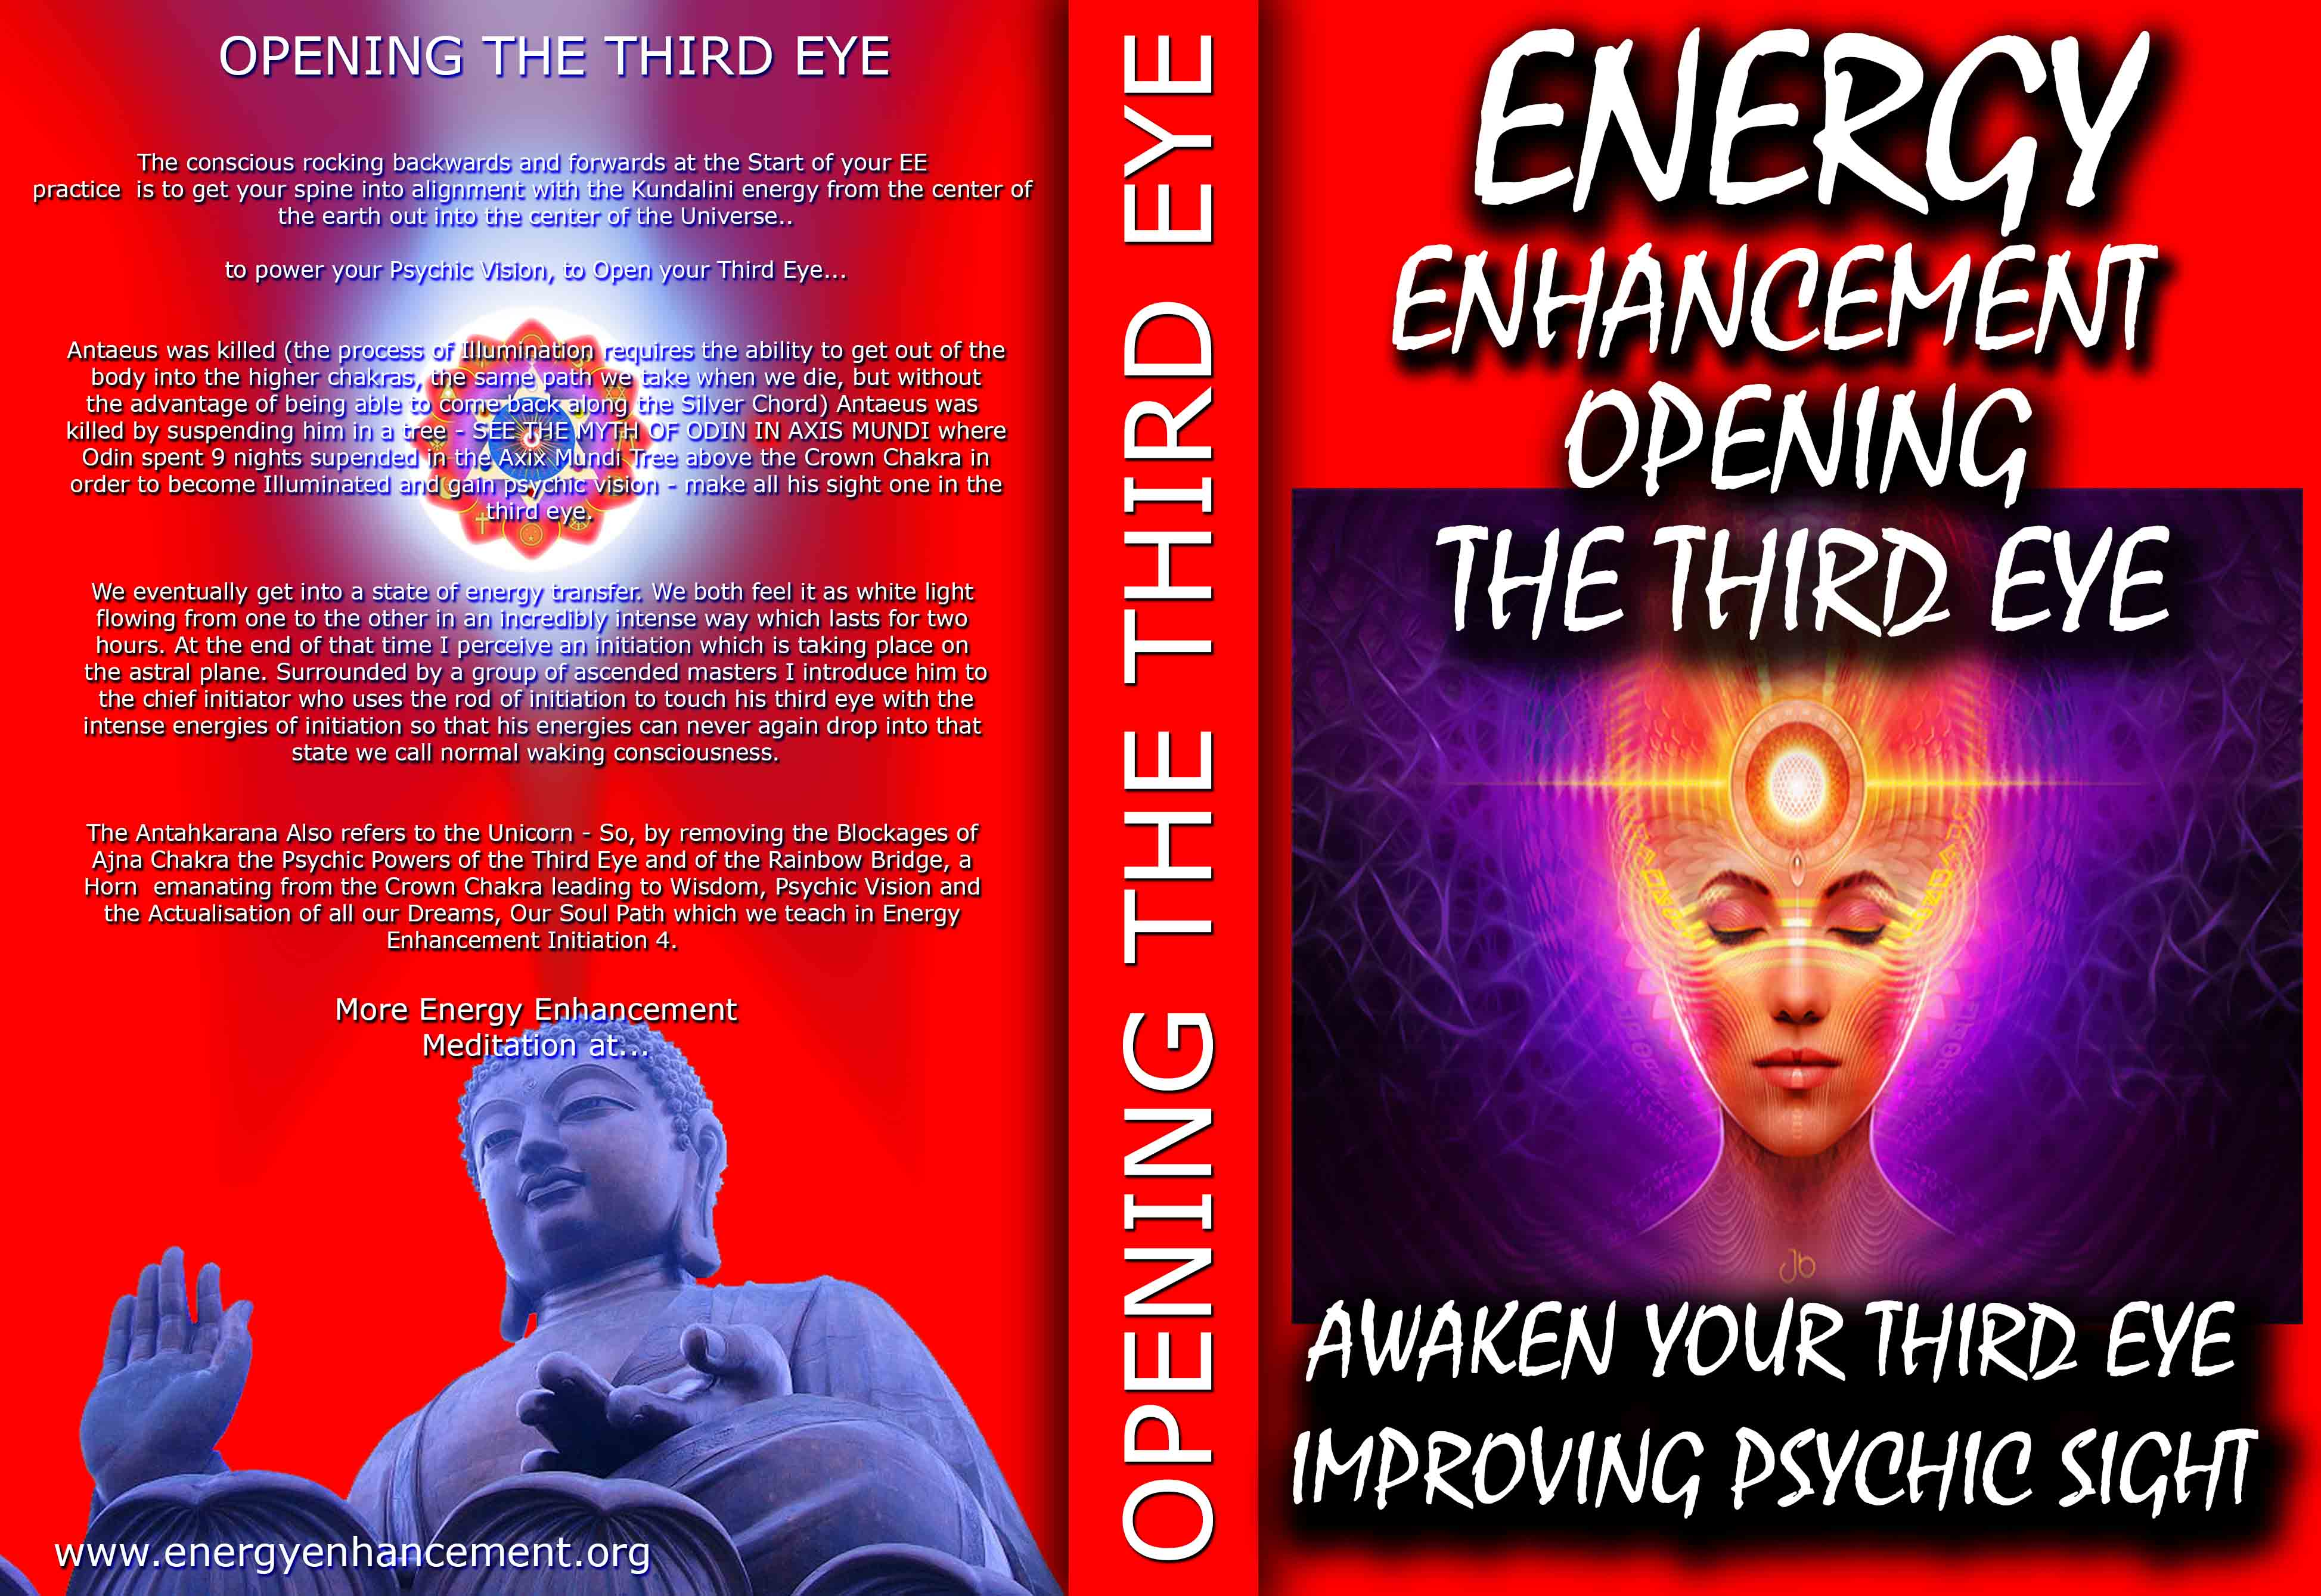 875c250c4d OPEN THE THIRD EYE PSYCHIC POWERS – WITH THE ENERGY ENHANCEMENT ...